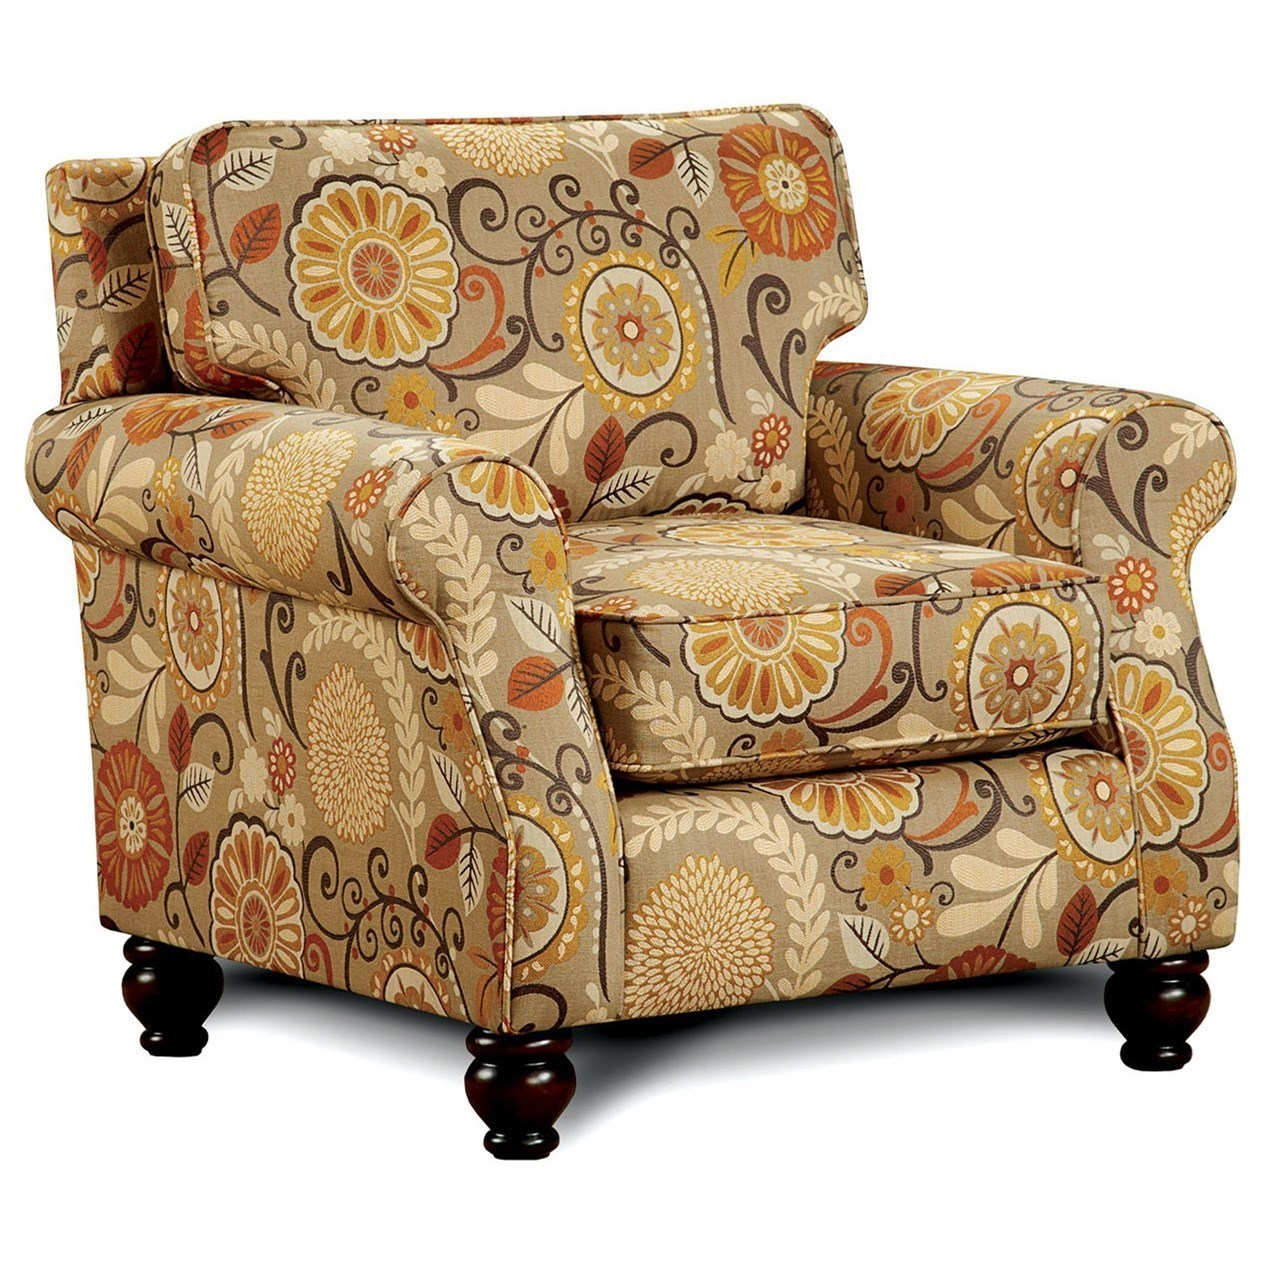 America Rollins Transitional Patterned Chair With Bun Feet